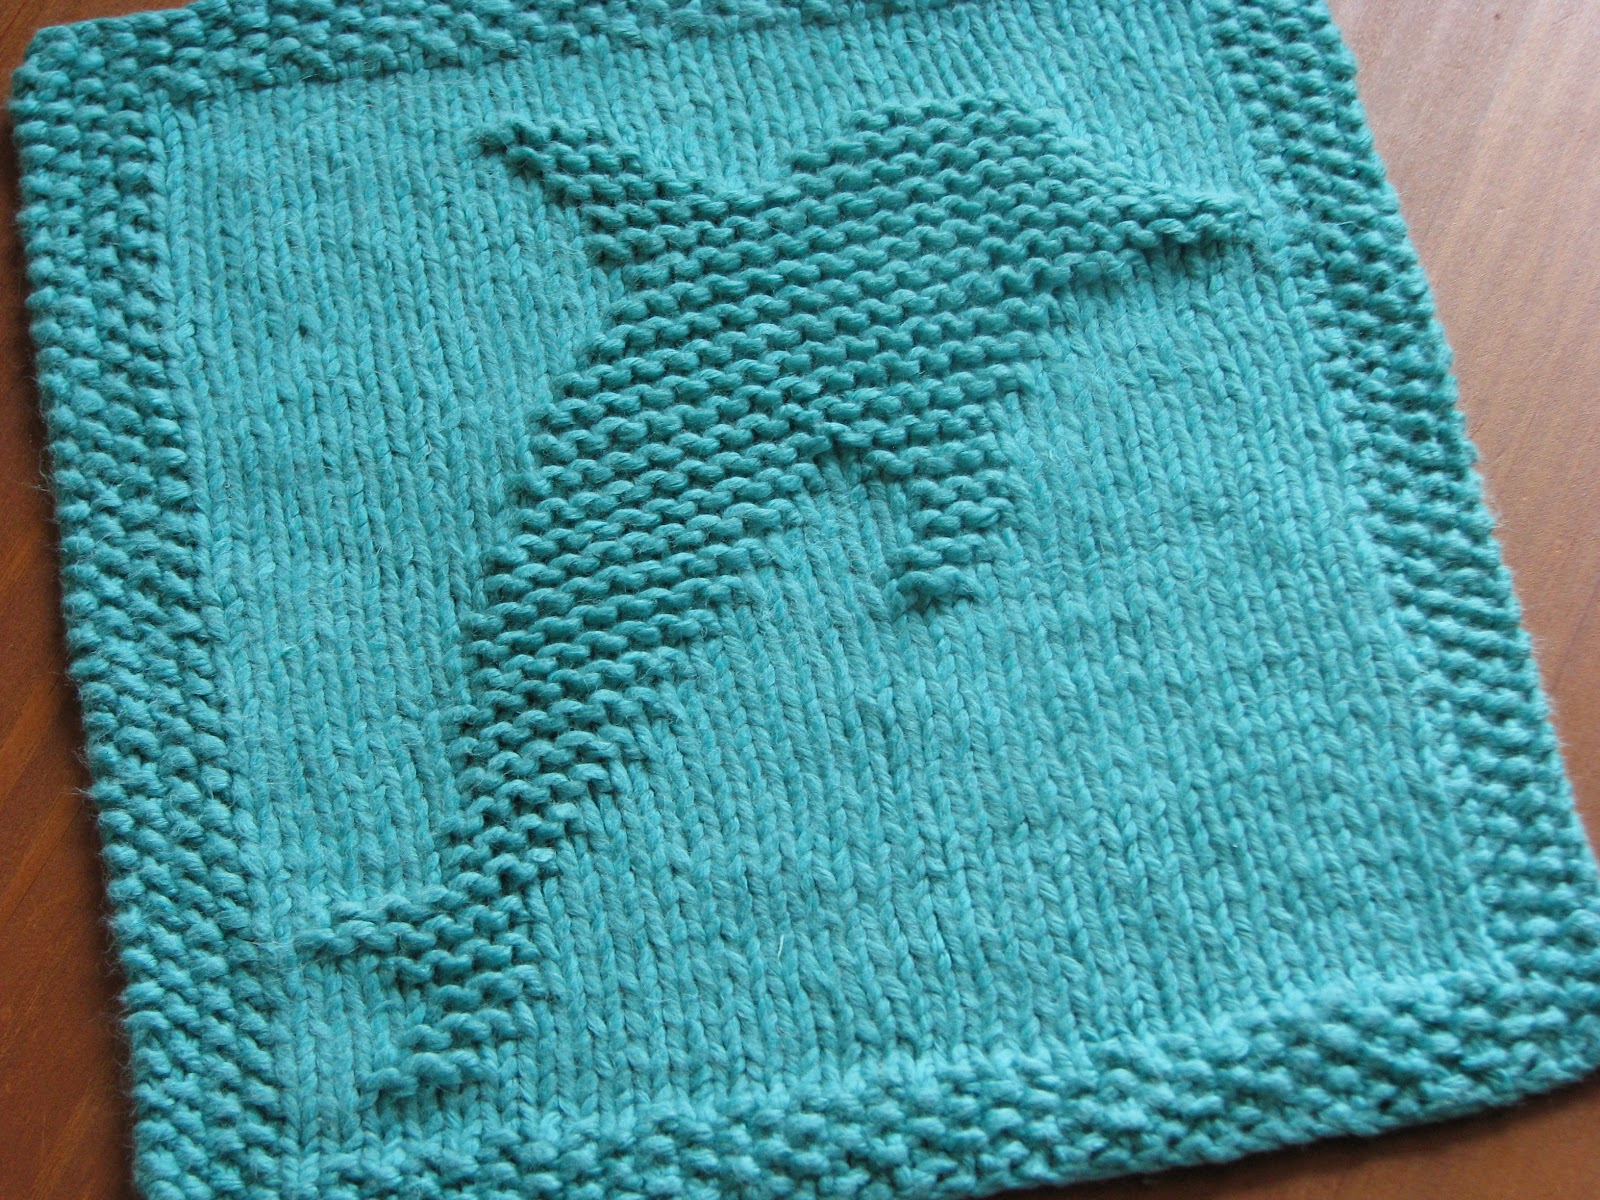 Crafty Knitting Patterns : One Crafty Mama: Dolphin Dishcloth